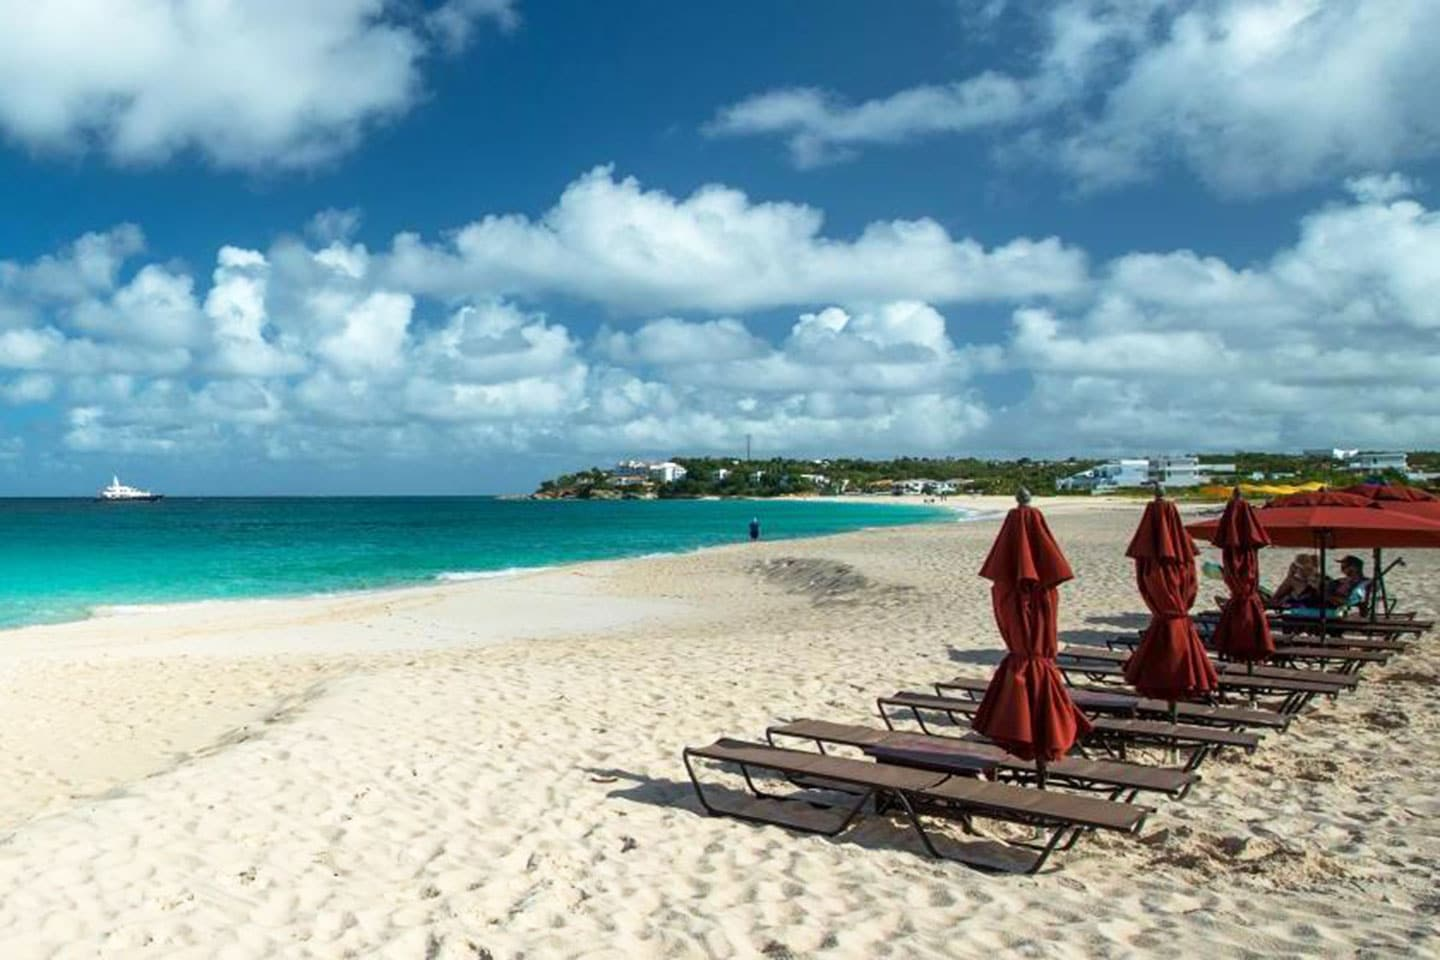 Meads bay - Anguilla